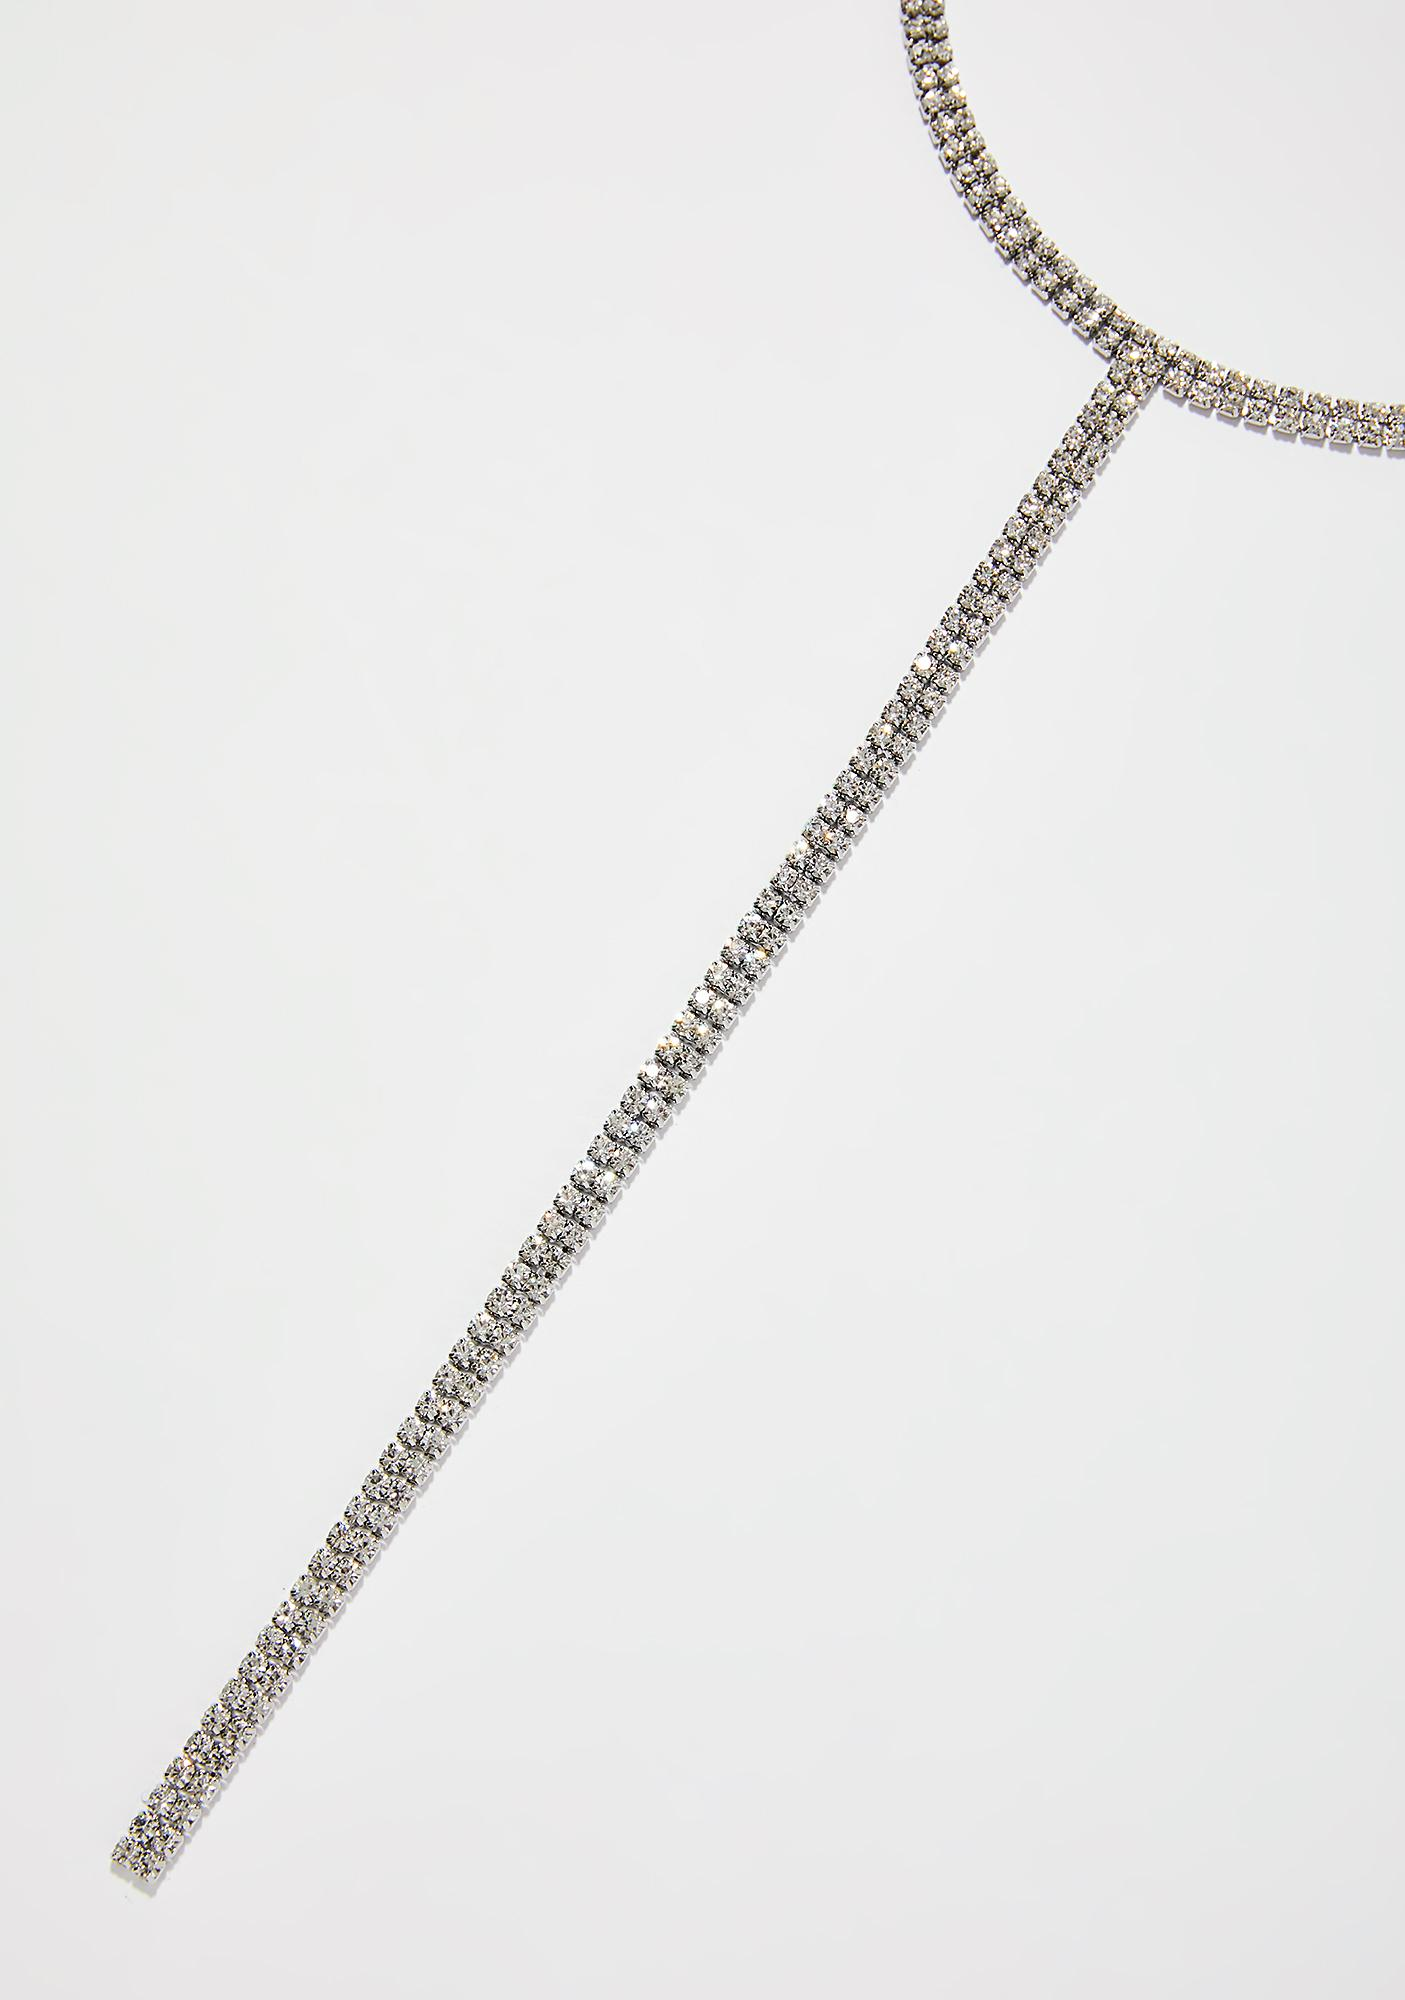 Cold As Ice Rhinestone Necklace